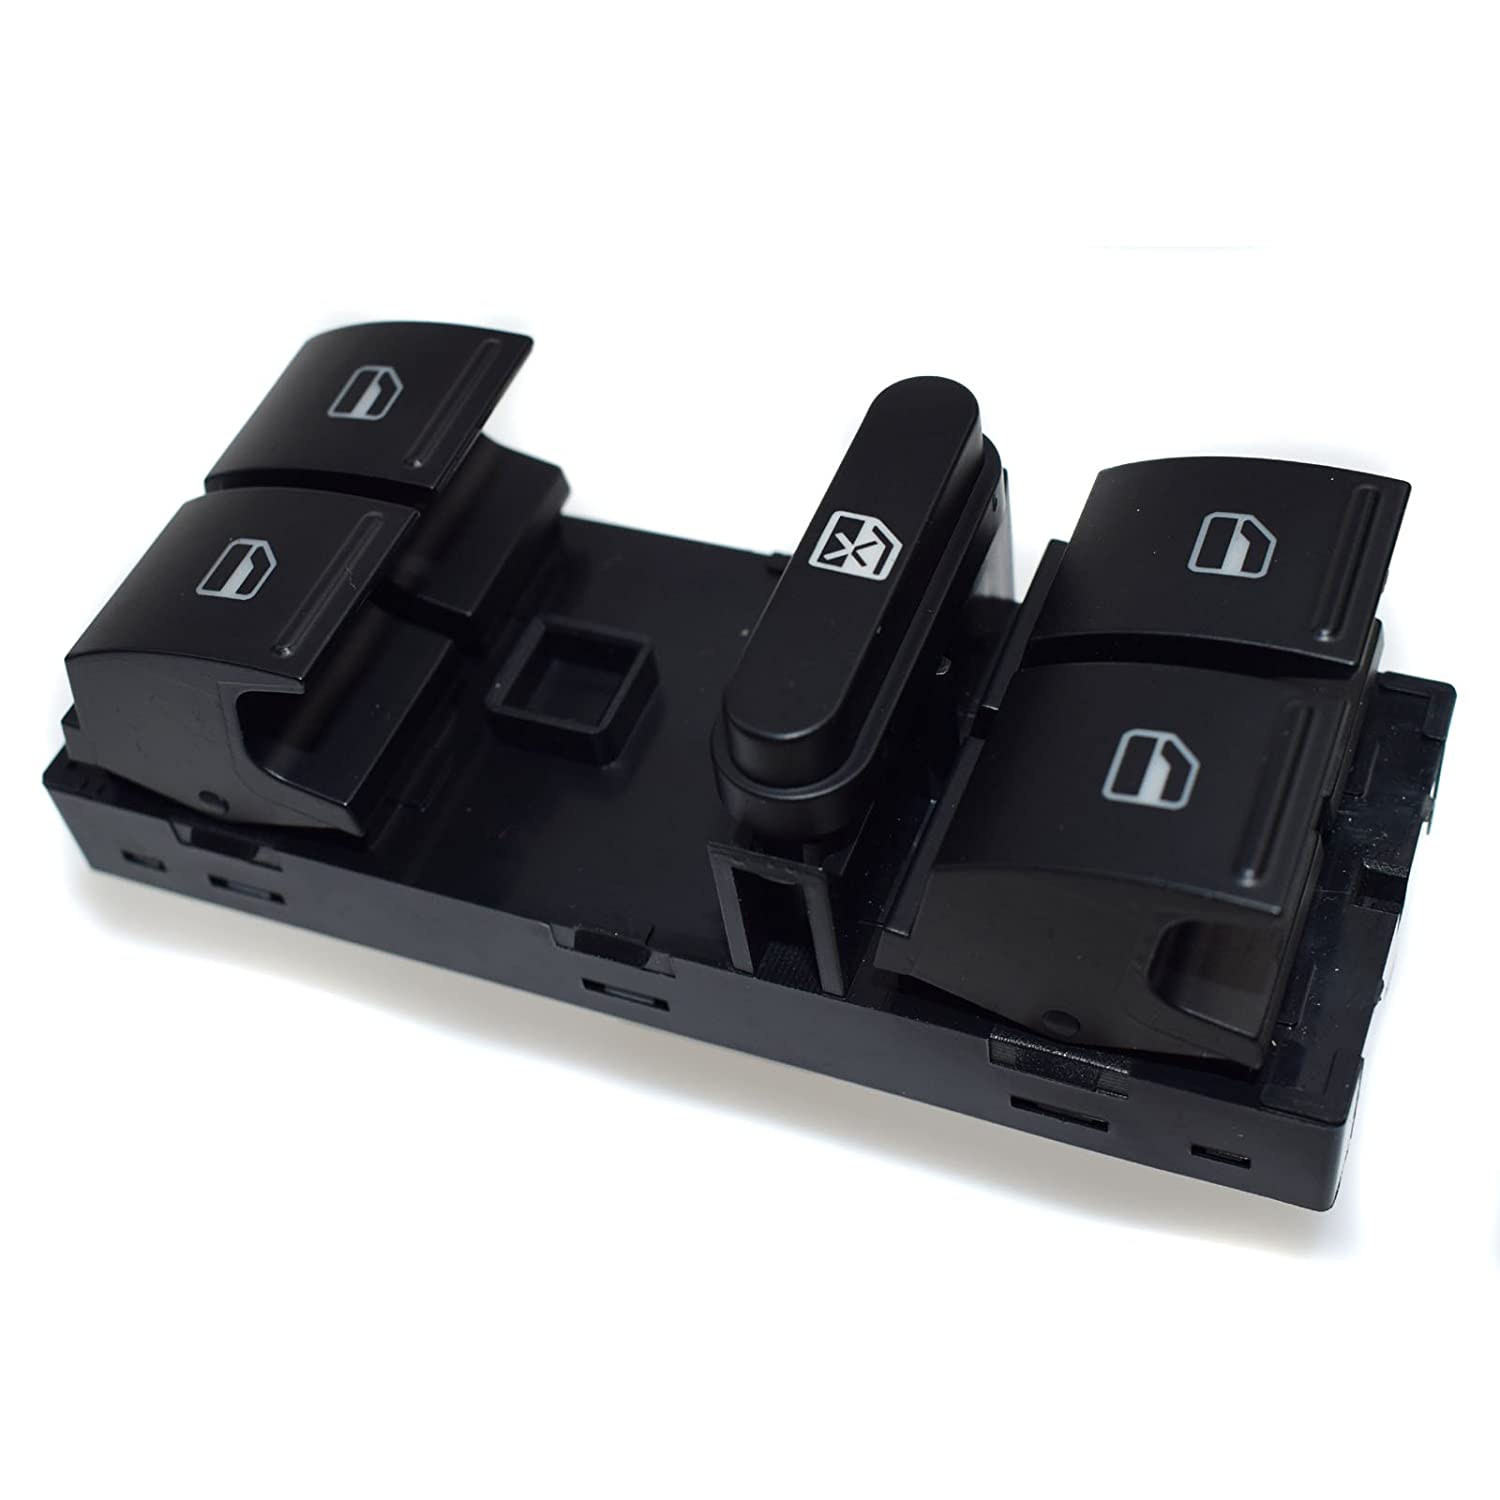 NEW Master Power Window Switch 1Z0959858B For FABIA OCATVIA CC Tiguan Passat B6 2006 2007 2008 2009 2010 2011 2012 Rejog4 Auto